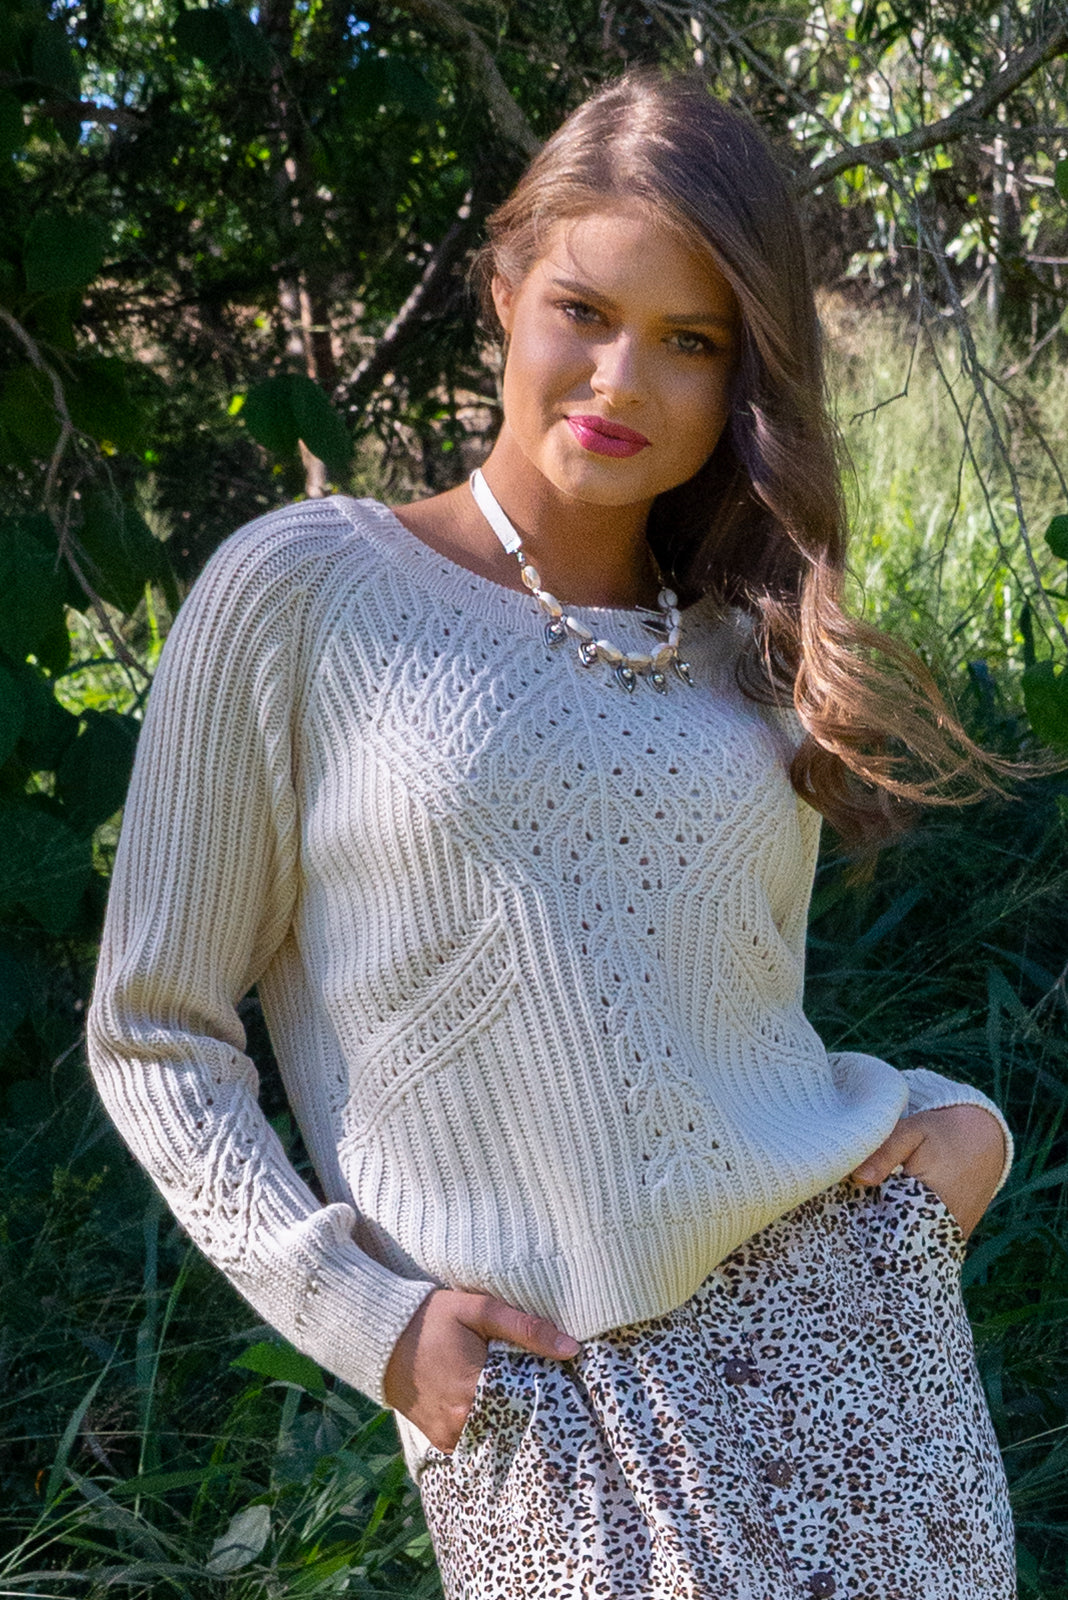 Cream, warm Jumper Caro Ecru will keep you cosy this winter. Vintage style ribbed weave design and ribbed cuffs. Scoop neckline and loose fitting. Very bohemian.